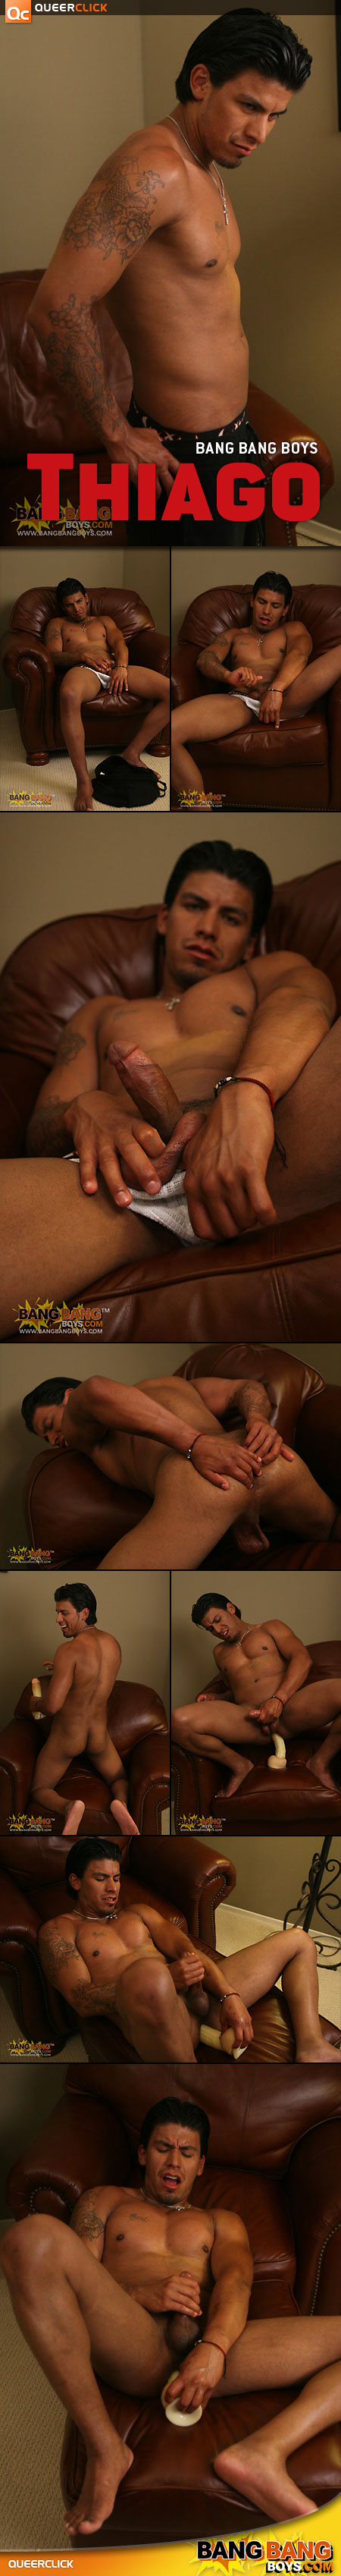 Thiago with Toy at BangBangBoys.com